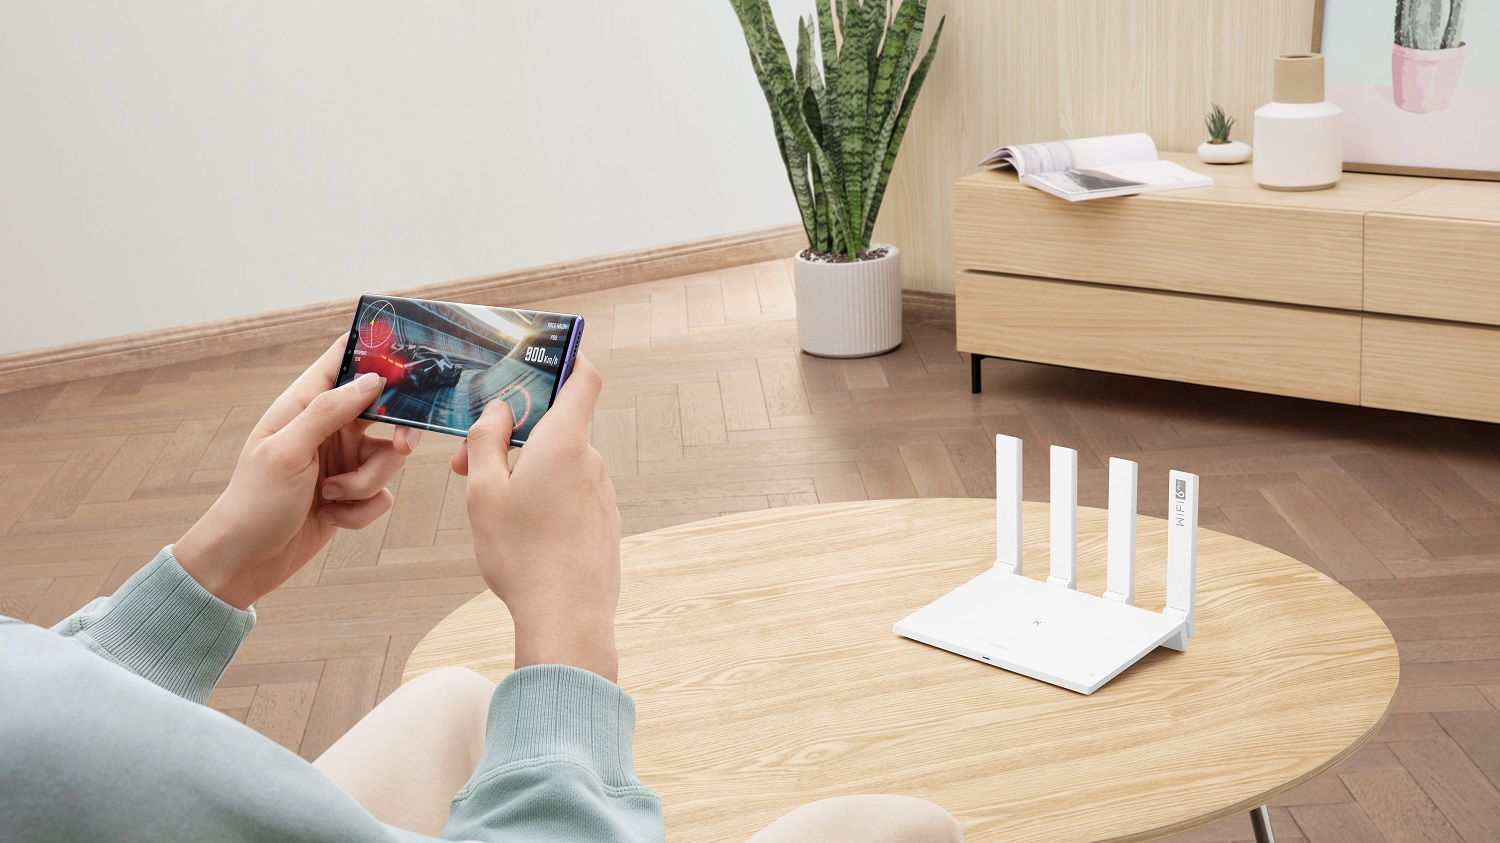 HUAWEI Unveils the New WiFi AX3 Featuring Gigahome Quad-core and Wi-Fi 6 Plus